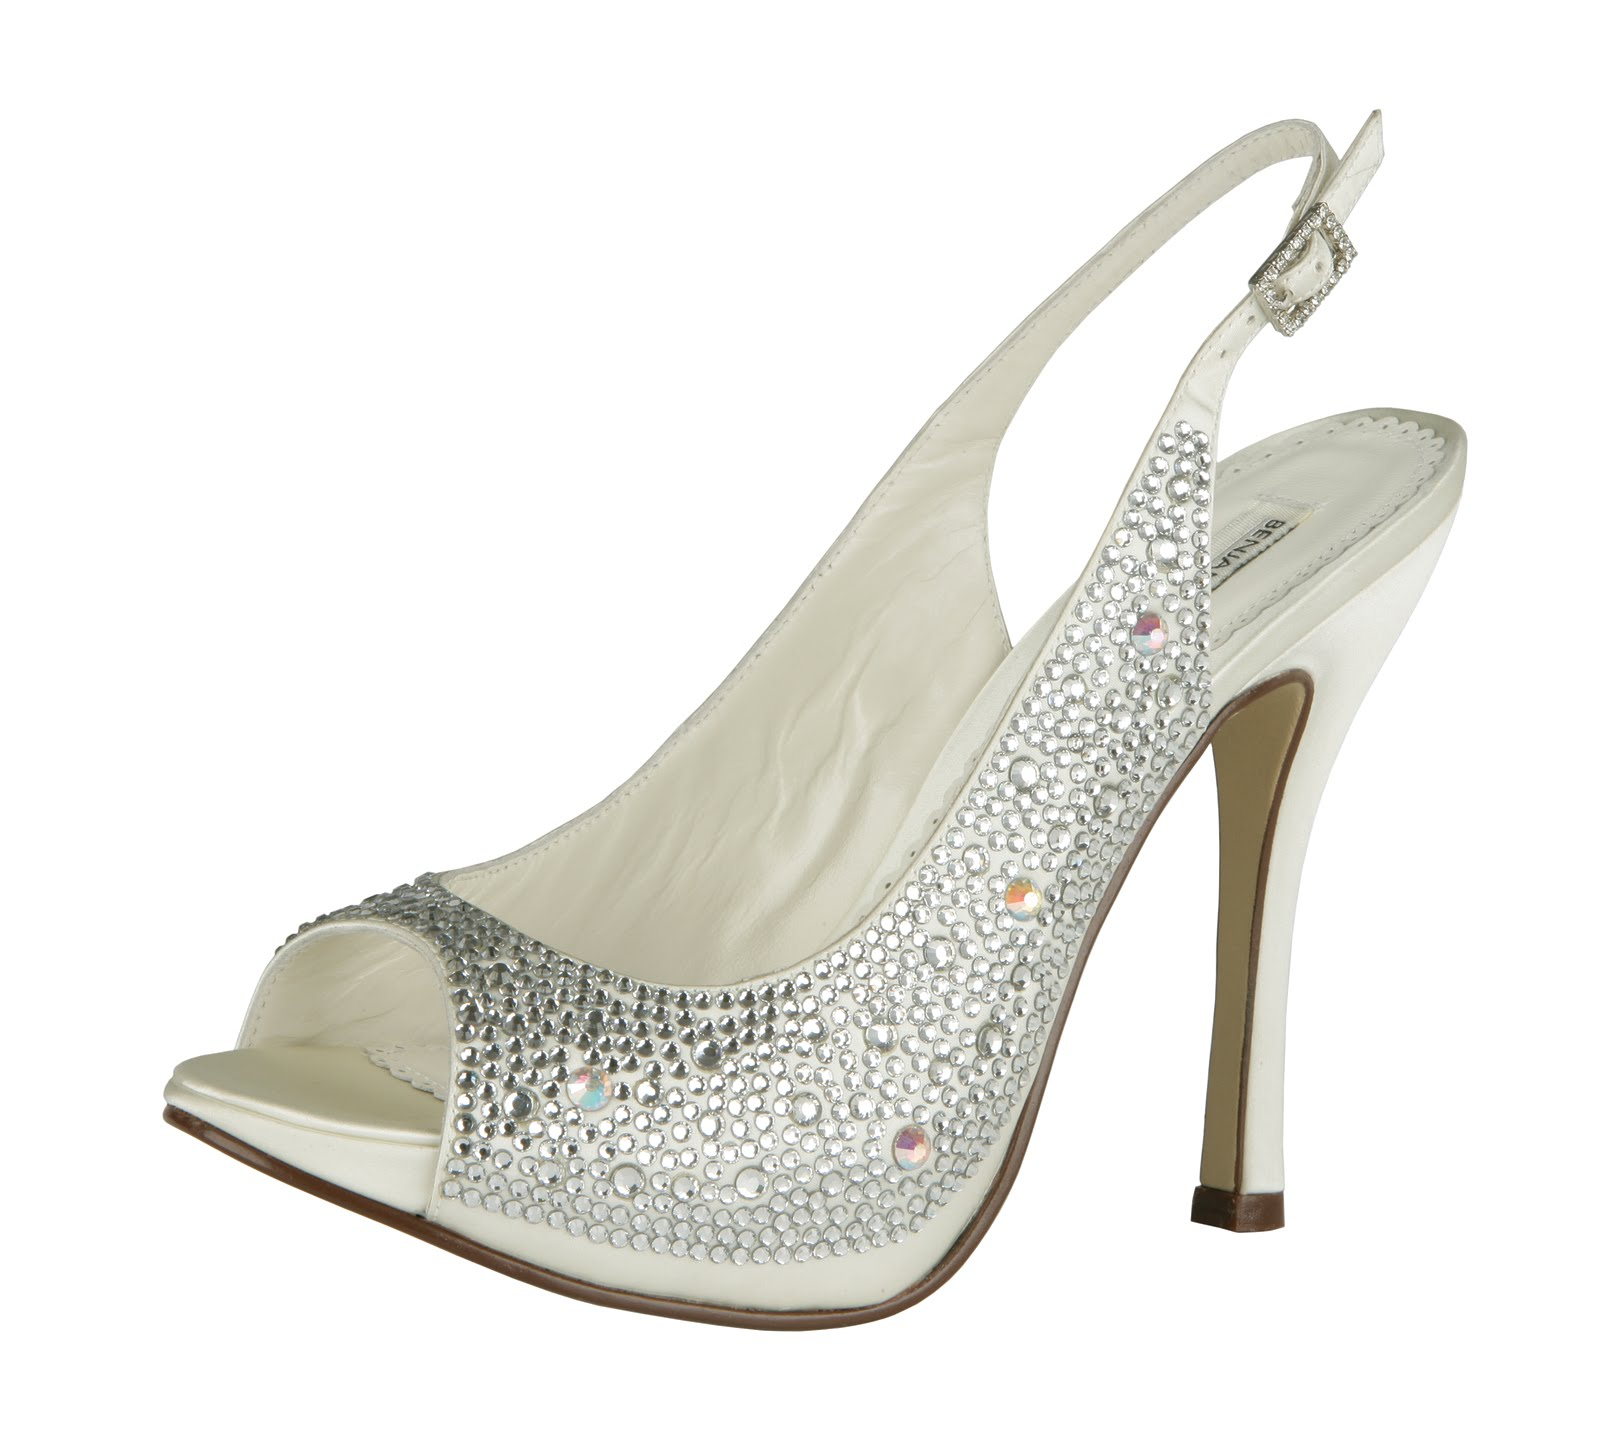 Everything But The Dress: All Crystal Bridal Shoes By